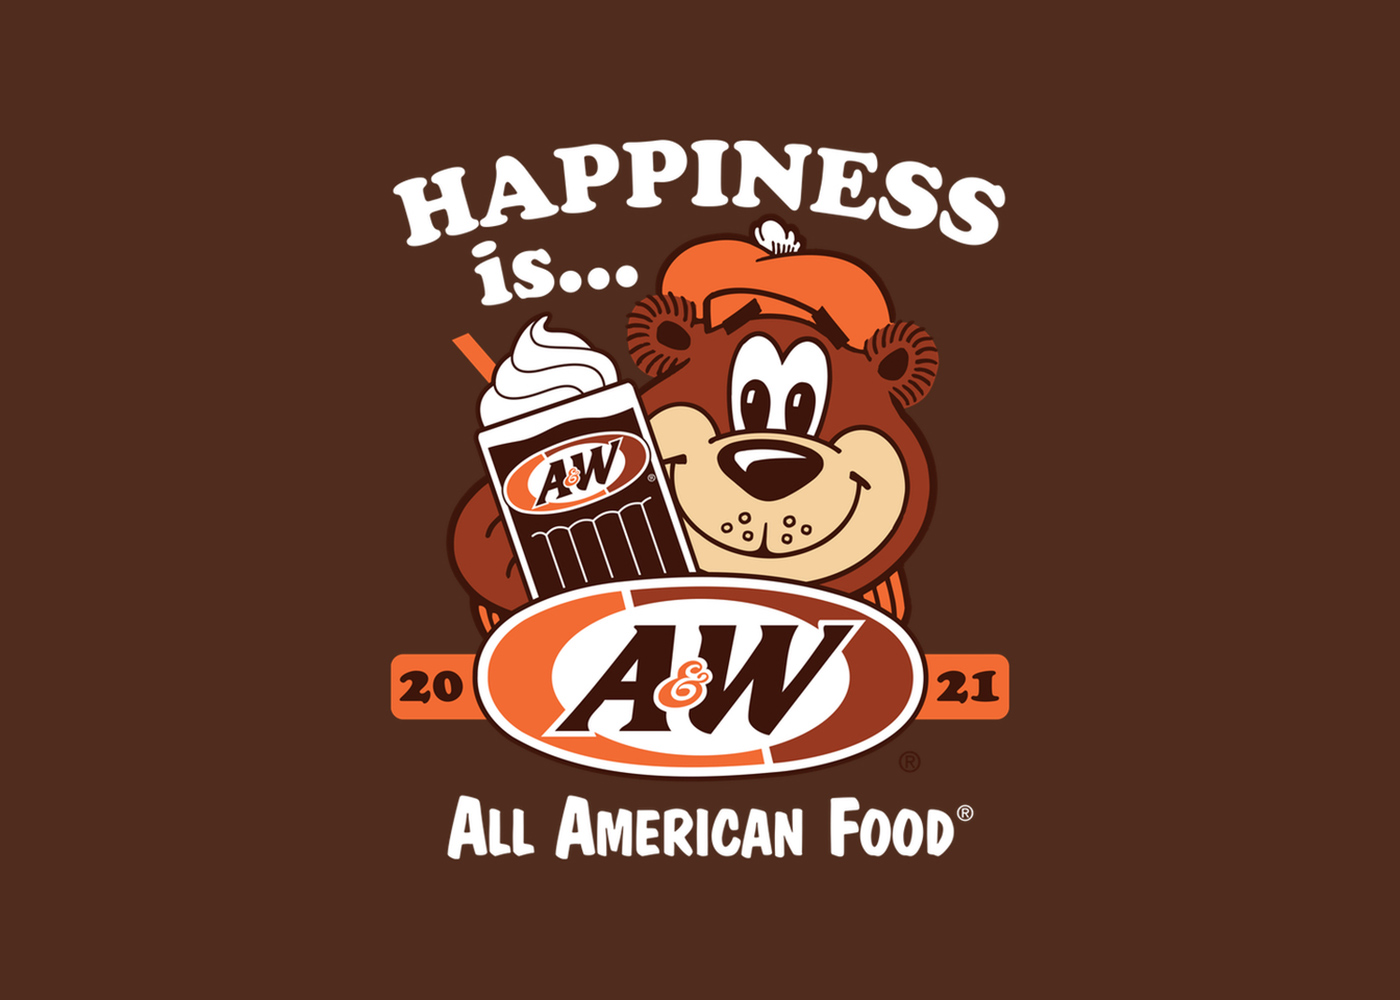 Background is brown. Artwork of Rooty the Great Root Bear holding an A&W Root Beer Float is in the center. Text above Rooty is white and reads